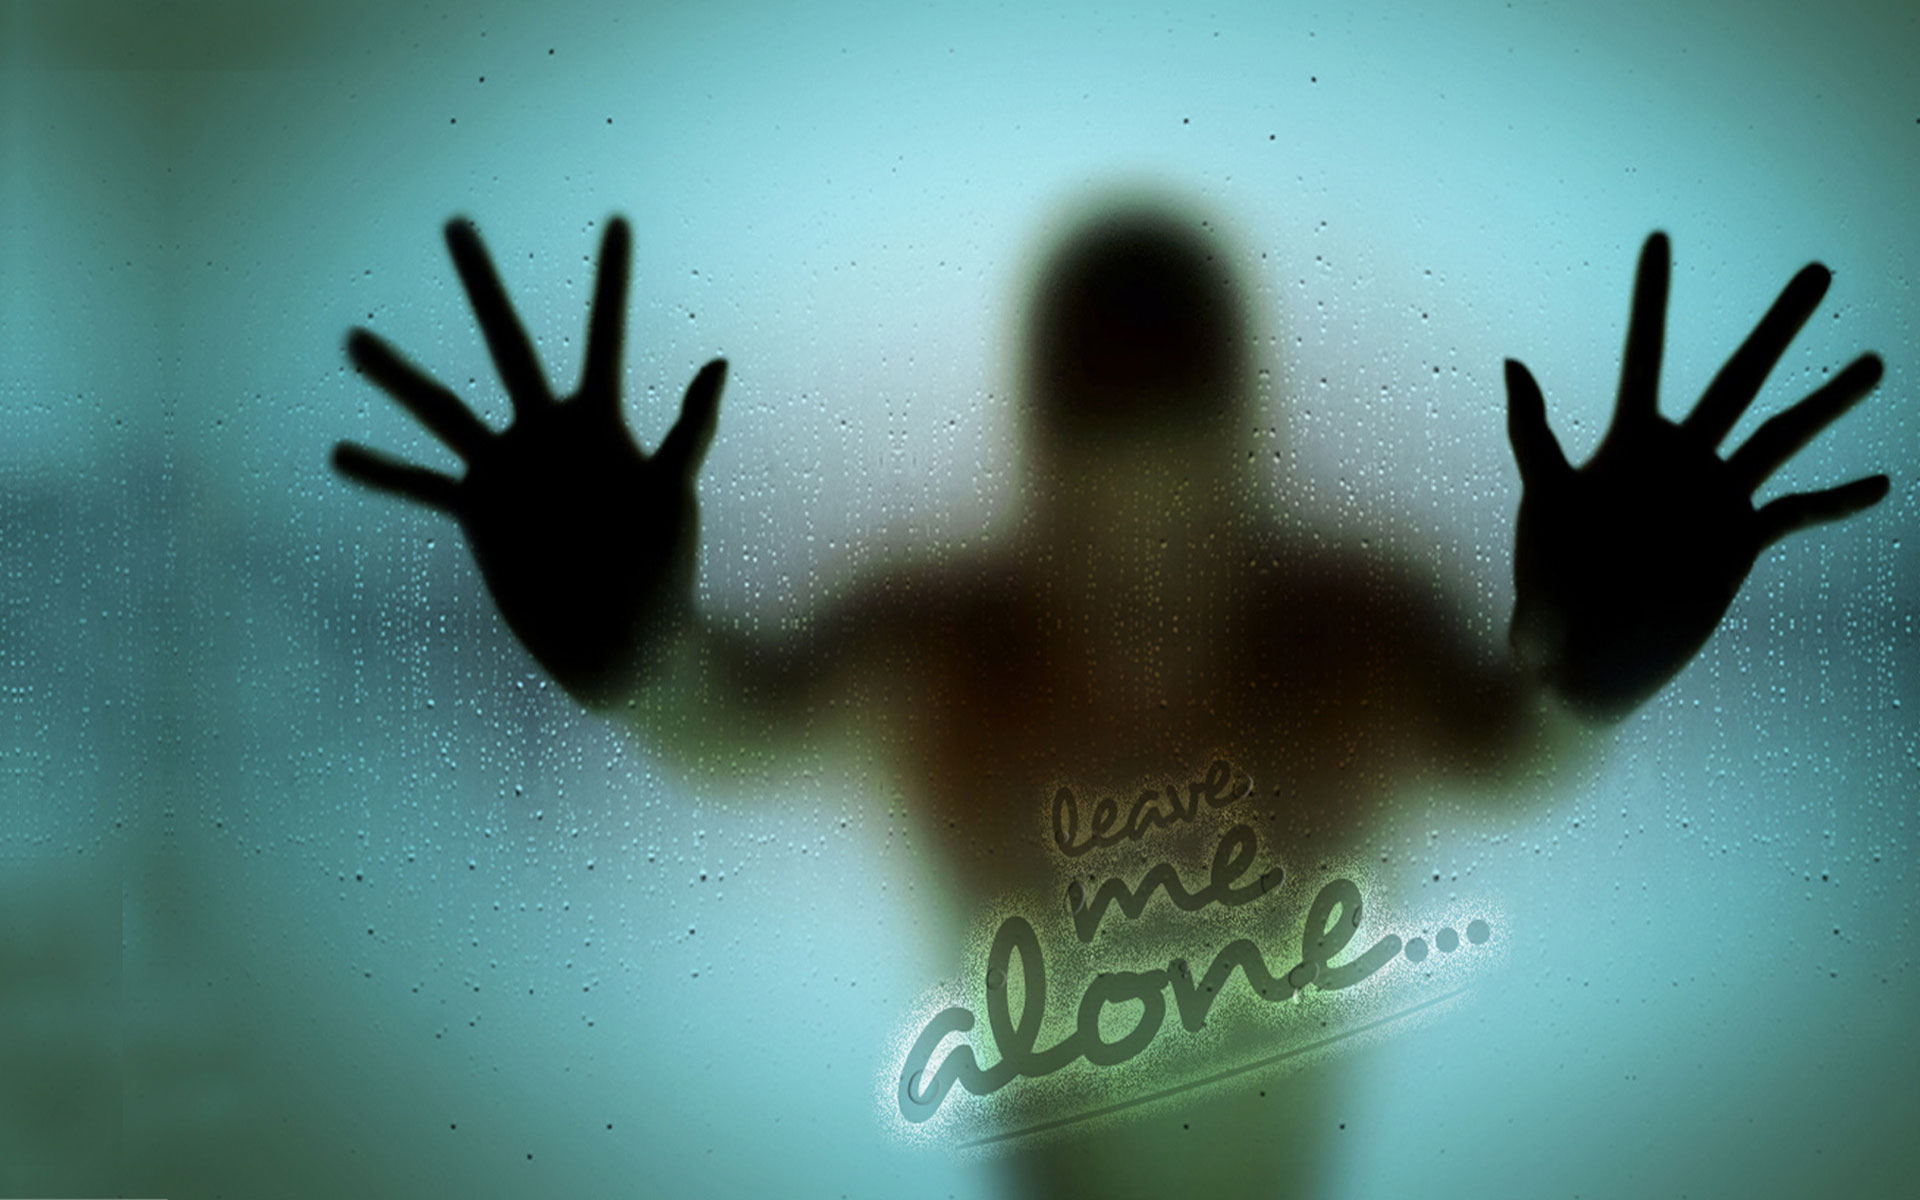 Alone hd wallpapers 1080p